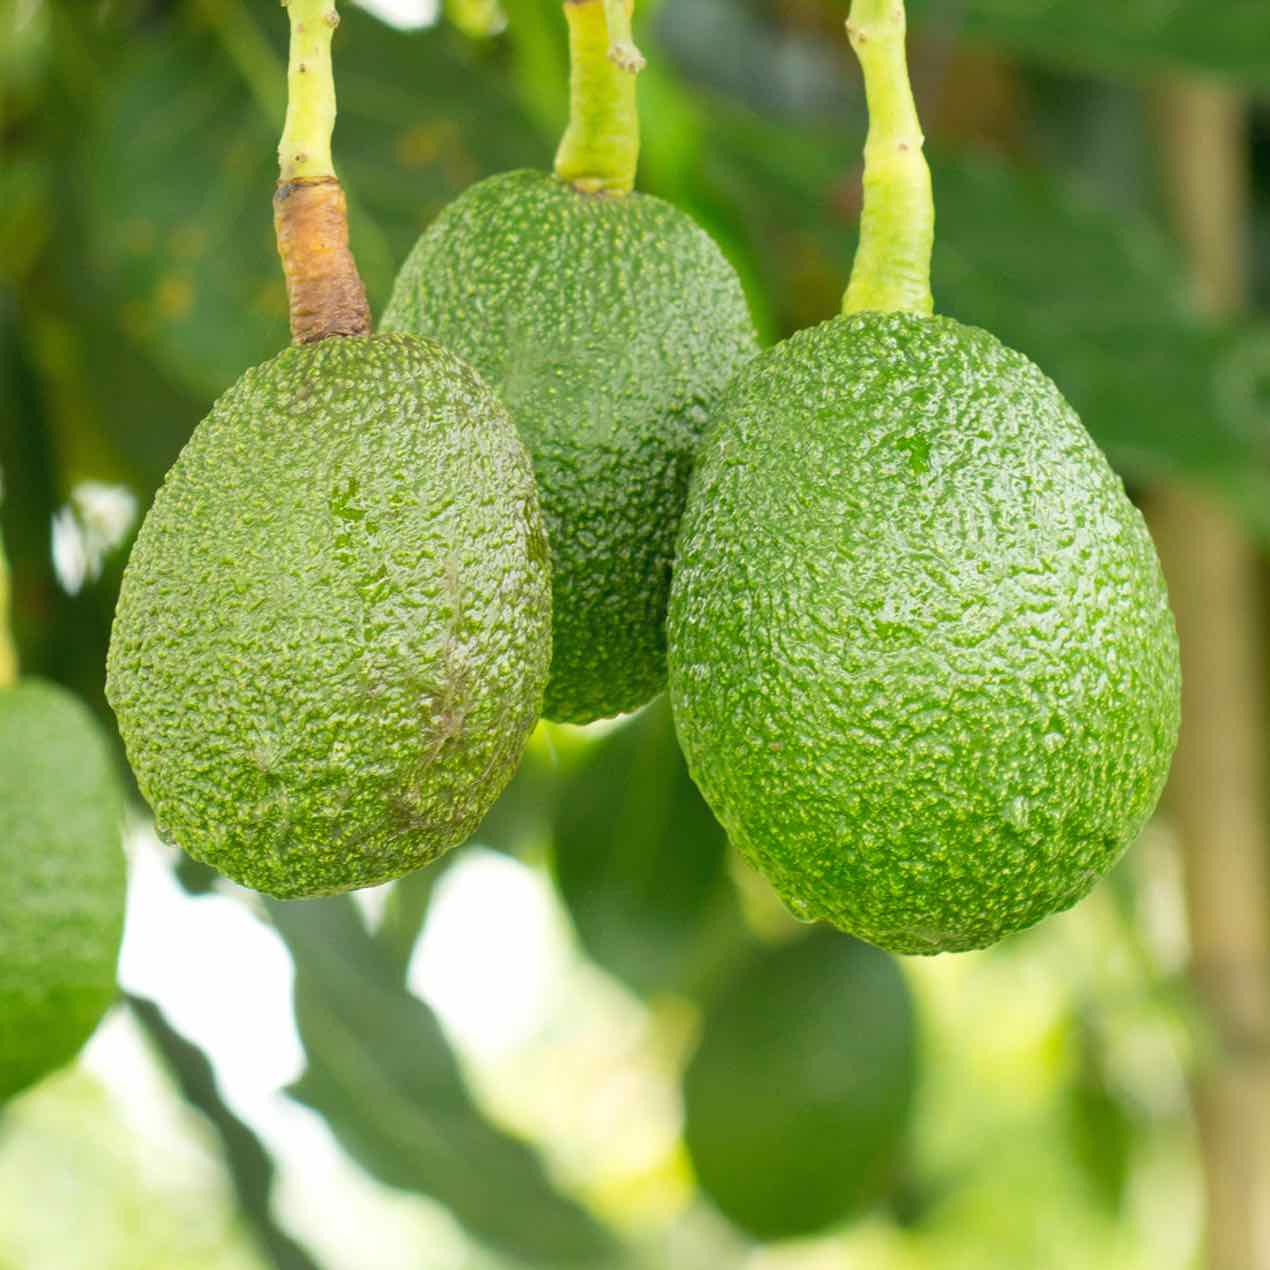 Avocado Category Image